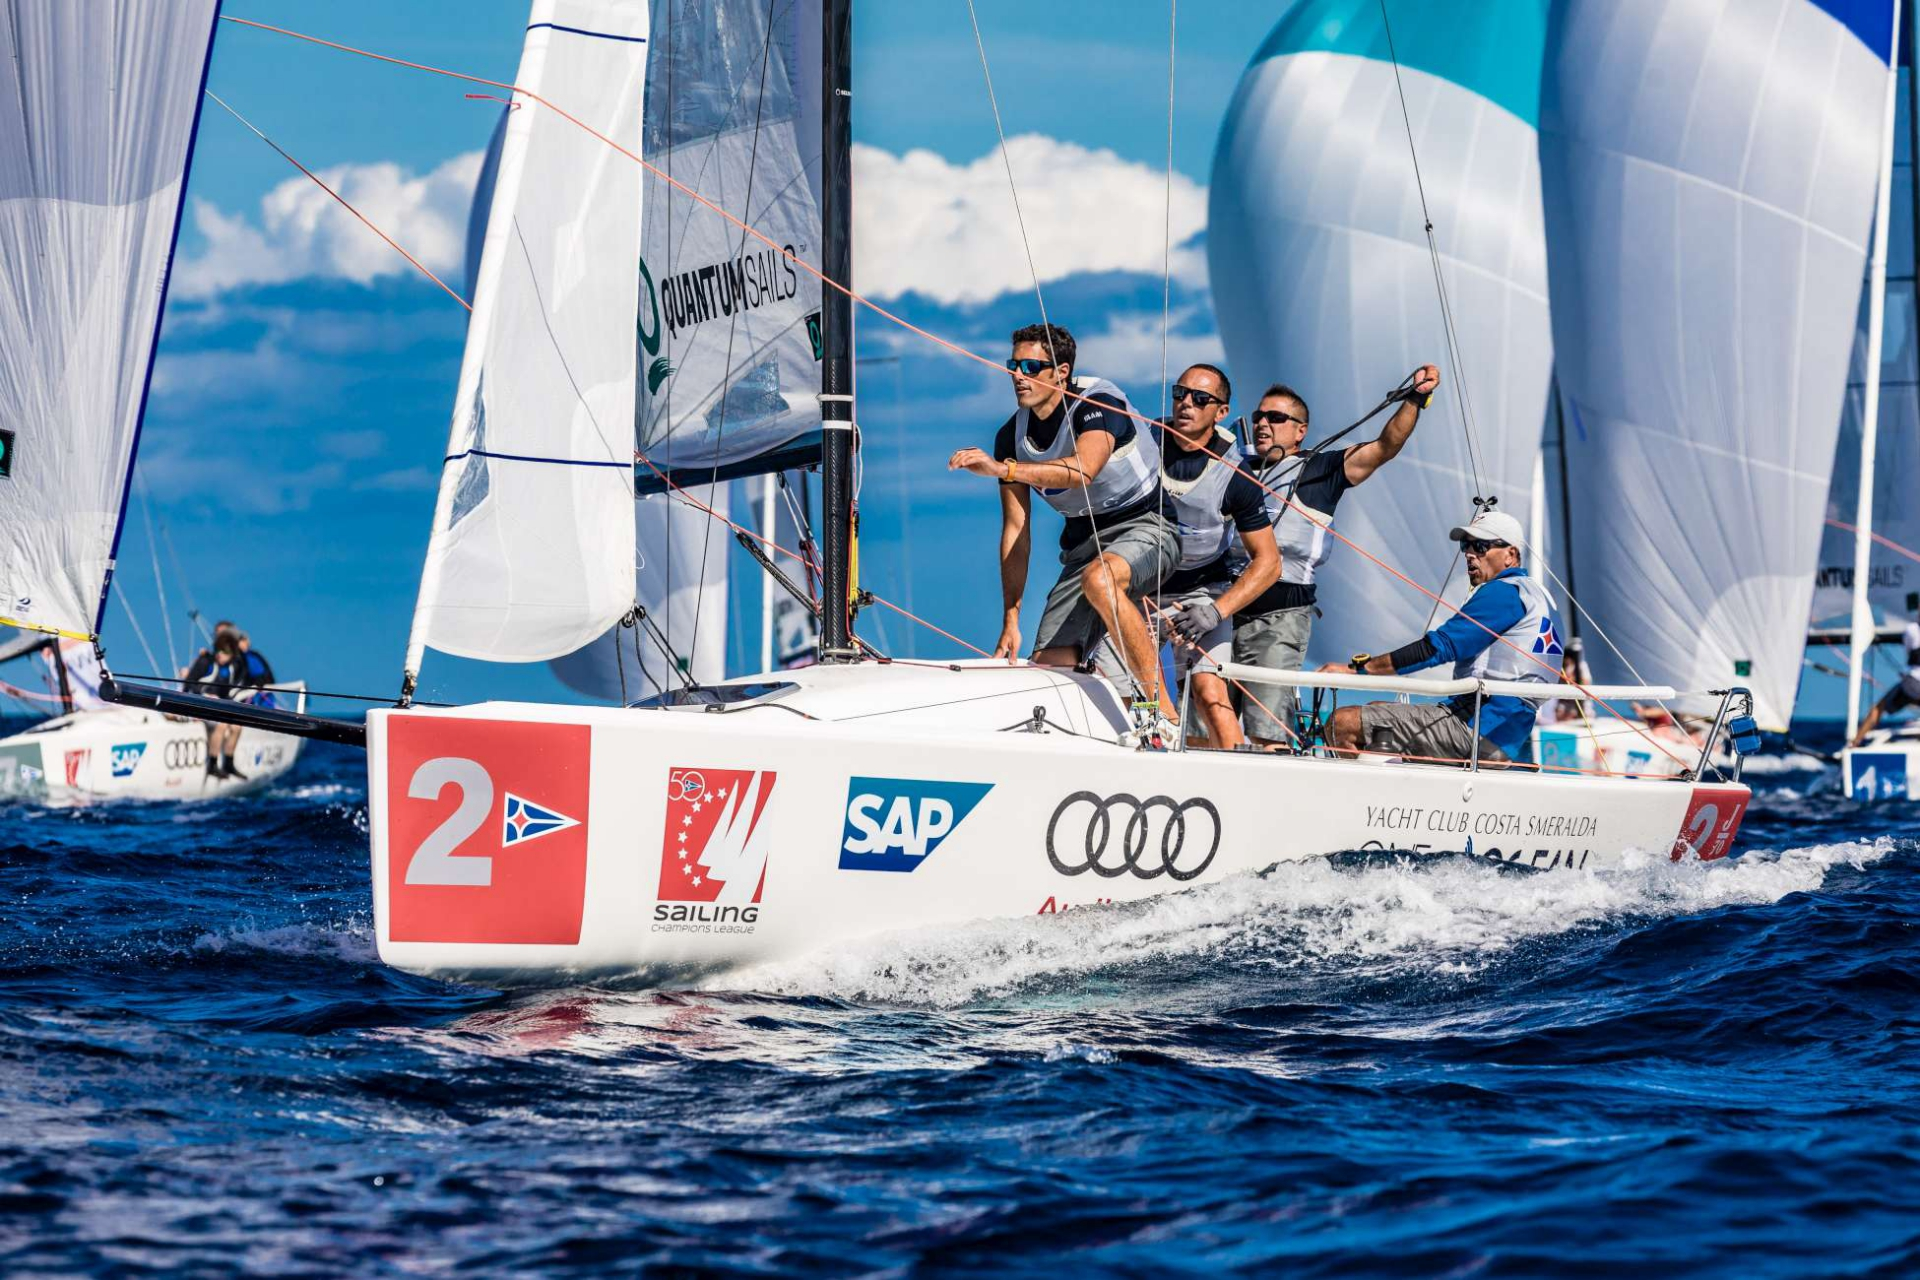 Fair winds on first day of Audi SAILING Champions League Final - NEWS - Yacht Club Costa Smeralda